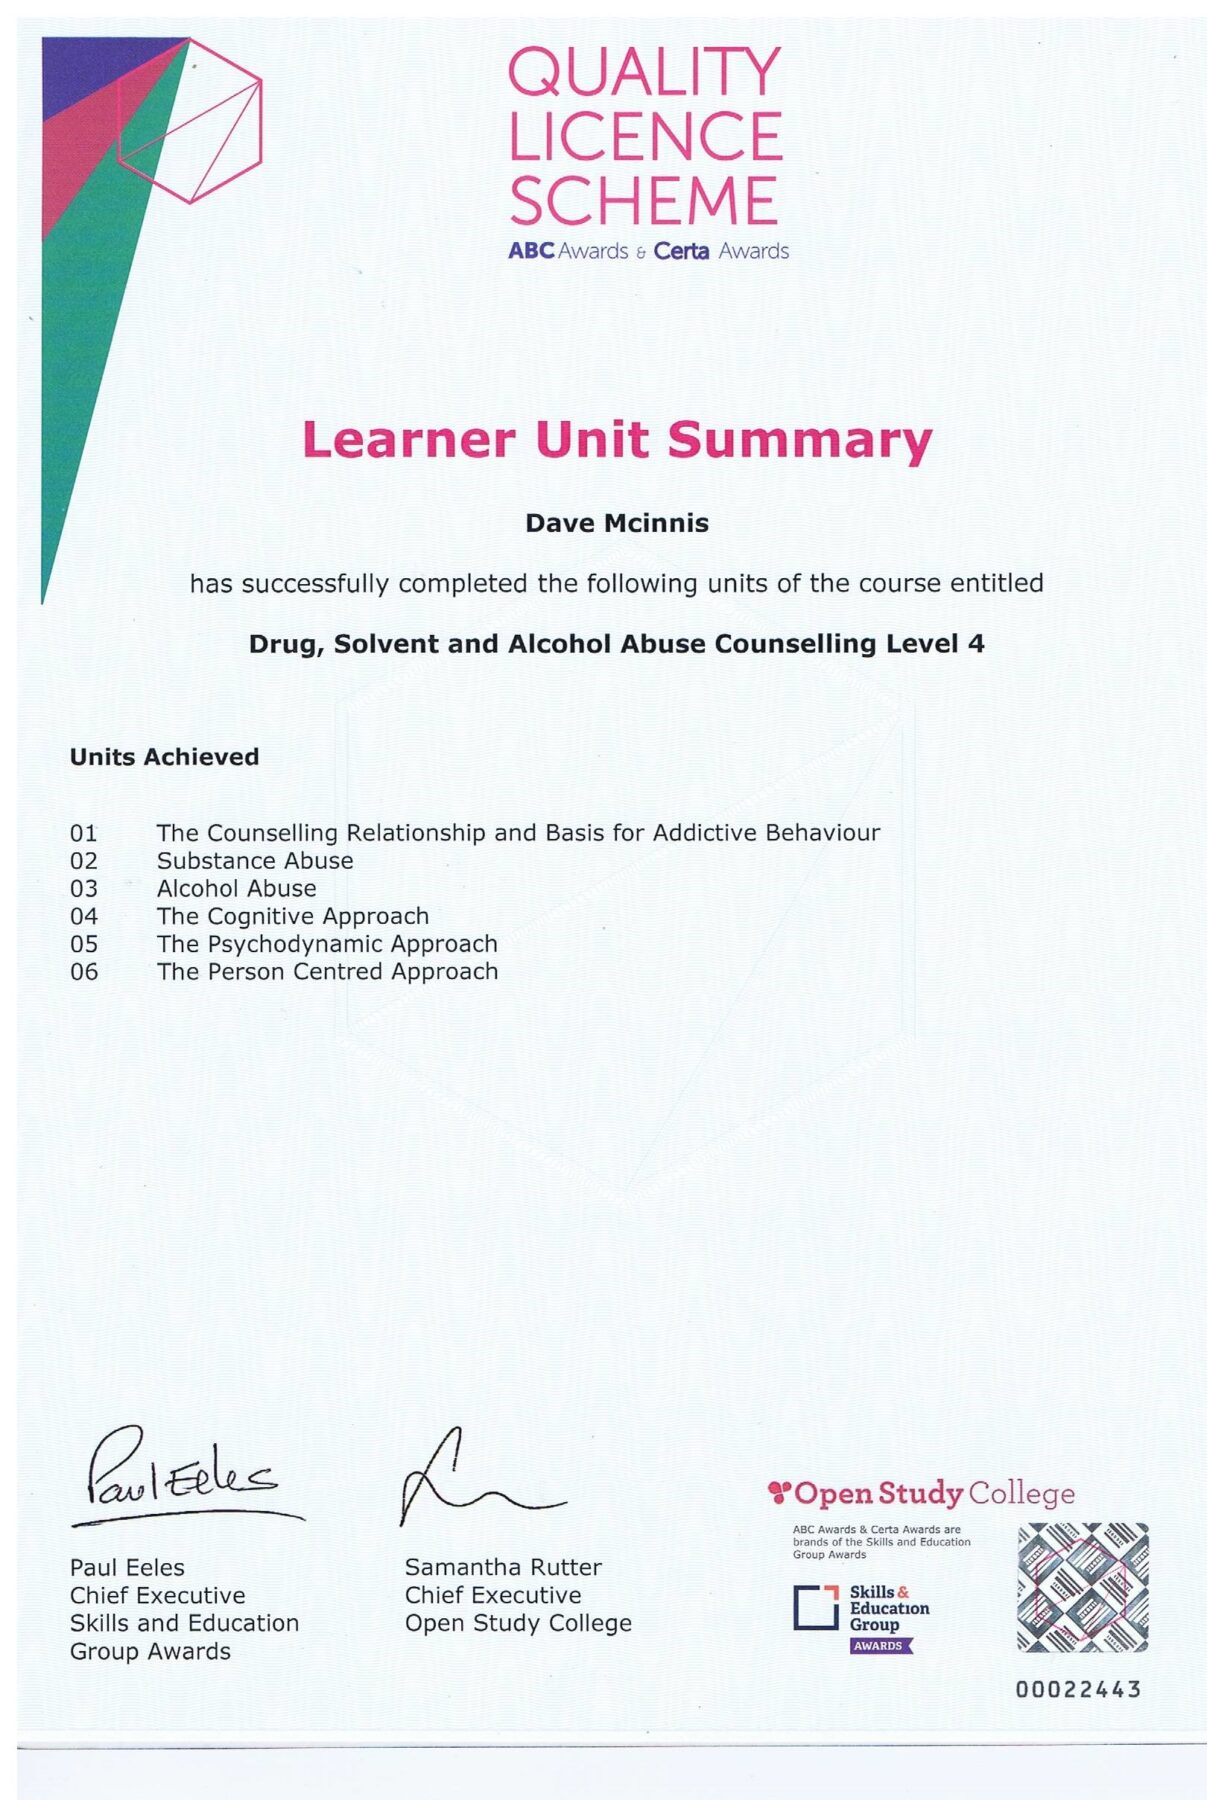 Learner Unit Summary, Drug, Solvent & Alcohol